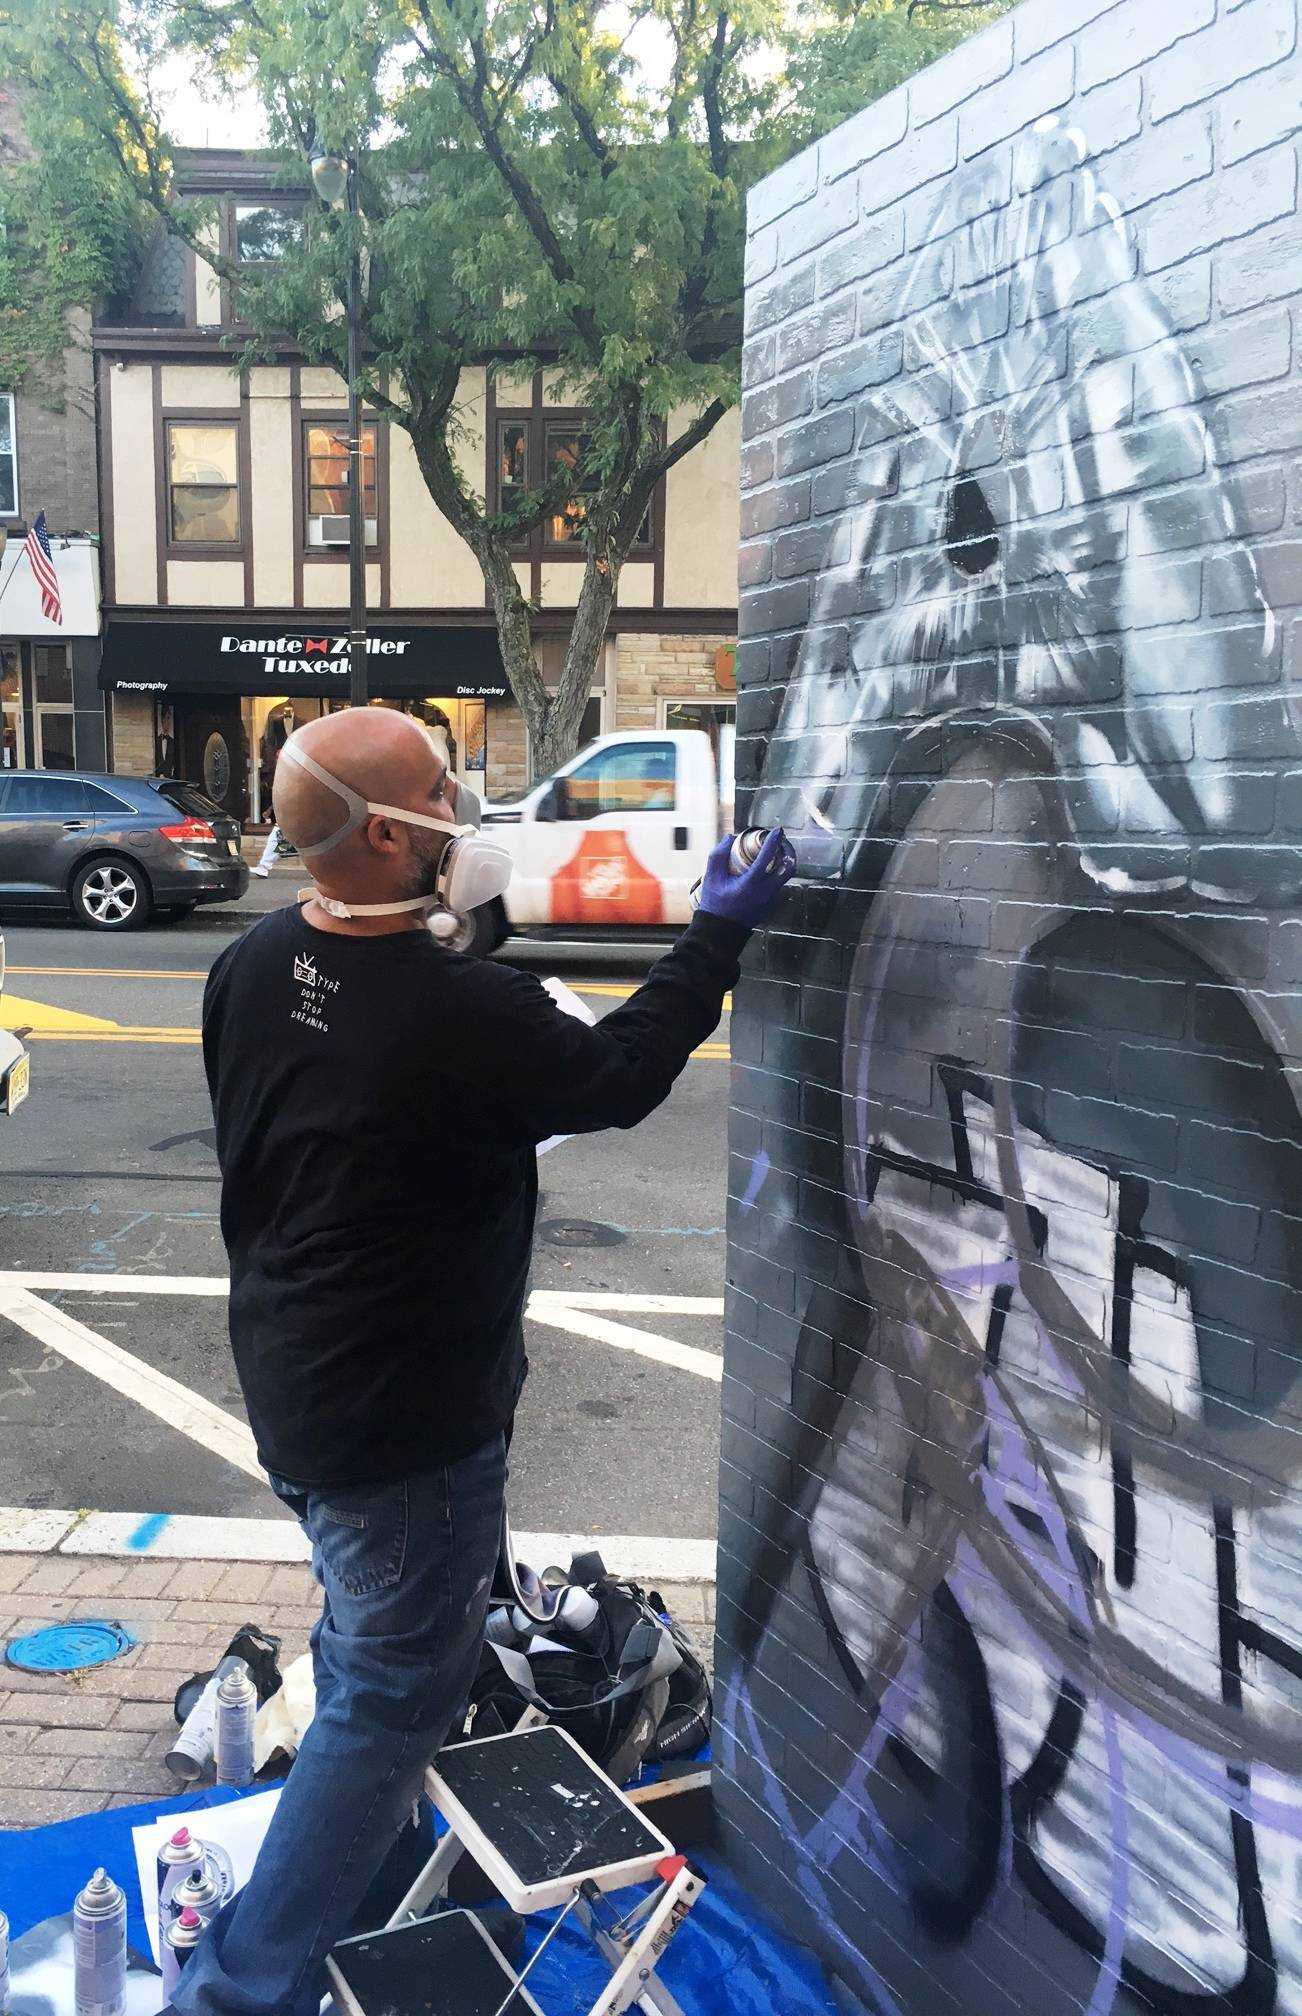 Sanctioned Graffiti Goes Mainstream in Downtown Somerville